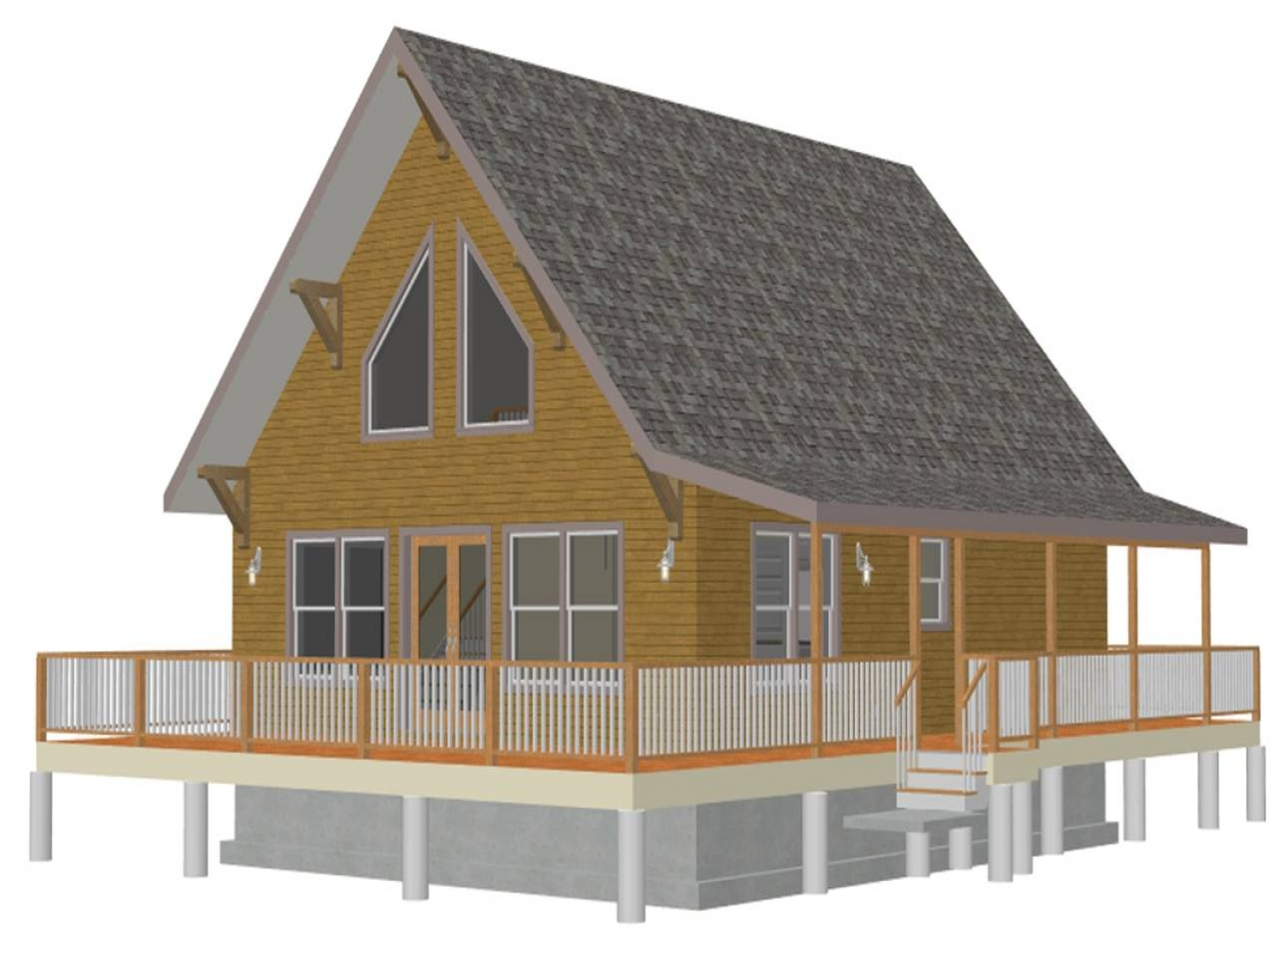 Small cabin house plans with loft small rustic house plans for House plans with loft design